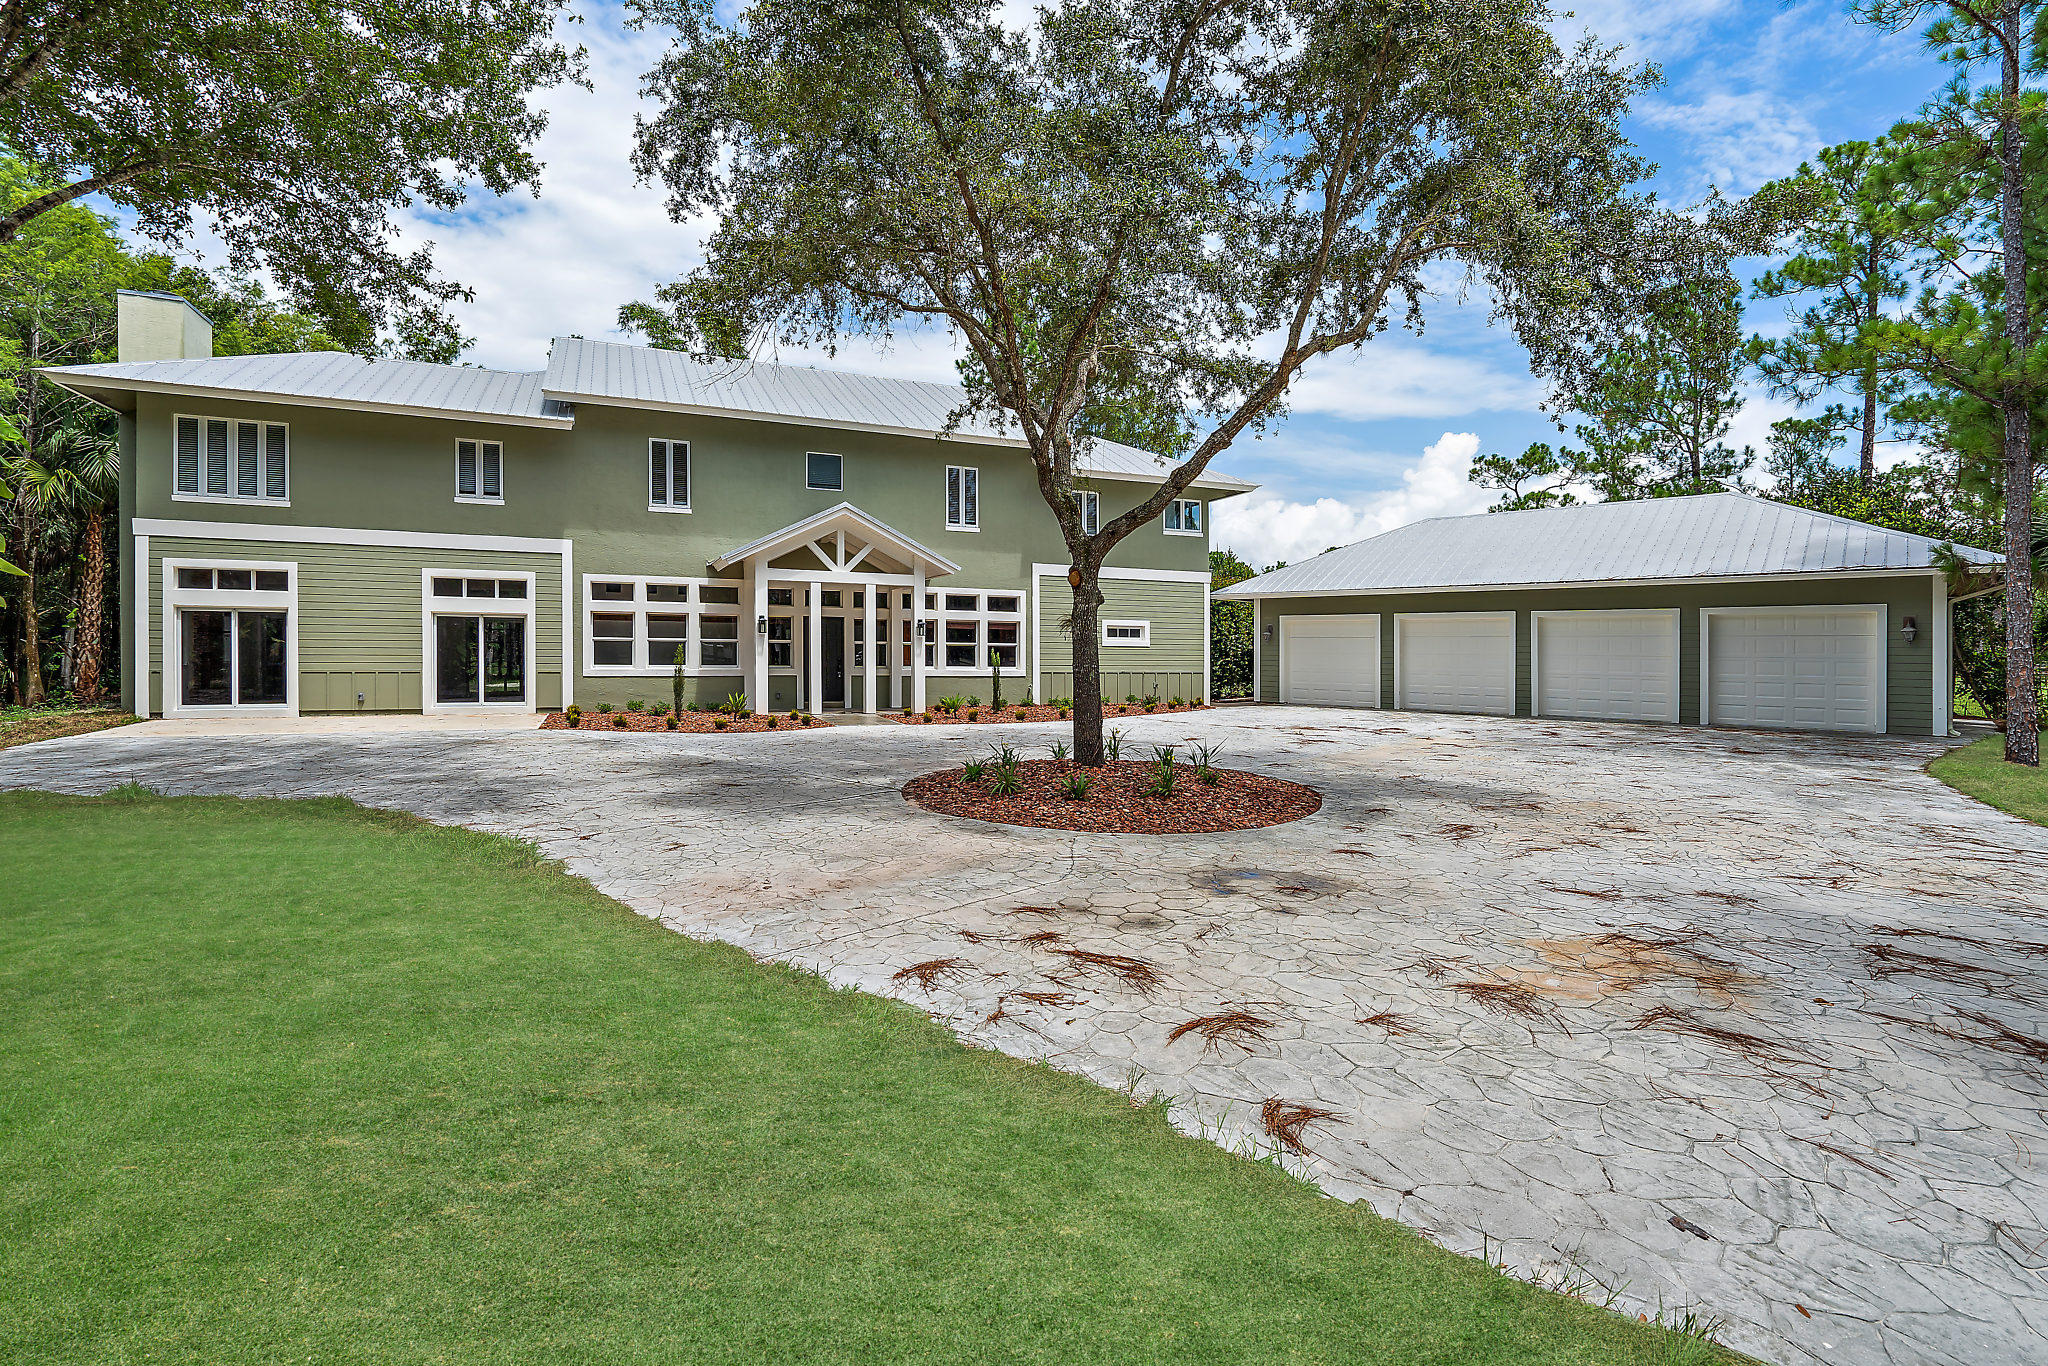 Wow! Welcome to Jupiter Farms living at its finest! ONE OF A KIND 5 Bedroom, 5-1/2 Bath PLUS BONUS 3rd floor LOFT & Detached 4 car garage & workroom situated on just over 3.76 acres of prime land! Built in 2003, CBS foundation and fully remodeled in 2019 with over $200,000 worth of upgrades, it has all the luxuries of a new home that you deserve. From PGT hurricane impact glass windows on 2nd floor, authentic wood floors, PebbleTech pool & spa, metal roof, authentic fireplace, huge walk in closets, fresh paint inside and out, landscaping featuring natural and indigenous plants throughout and many classic craftsman features to keep the living environment ''Country modern''. This home is unlike any other in the Jupiter Farms area. It gives way to bright and inviting living spaces throughout, great layout and well thought out planning. Enjoy the gourmet kitchen with stainless appliances that is socially inviting and open to the dining area & family room, features that are great for family time and entertaining. An elegant and oversized master bedroom/bathroom suite, with view of your very own private pond where a Florida otter has made himself at home as well! The expansive secondary bedrooms give this home more of its character and luxury, including a mother in law suite with secondary laundry room. With plenty of upgrades throughout, and over 5,258 total sq ft (3,589 sq ft of living area) this home is set for the most discerning buyer. A MUST SEE!